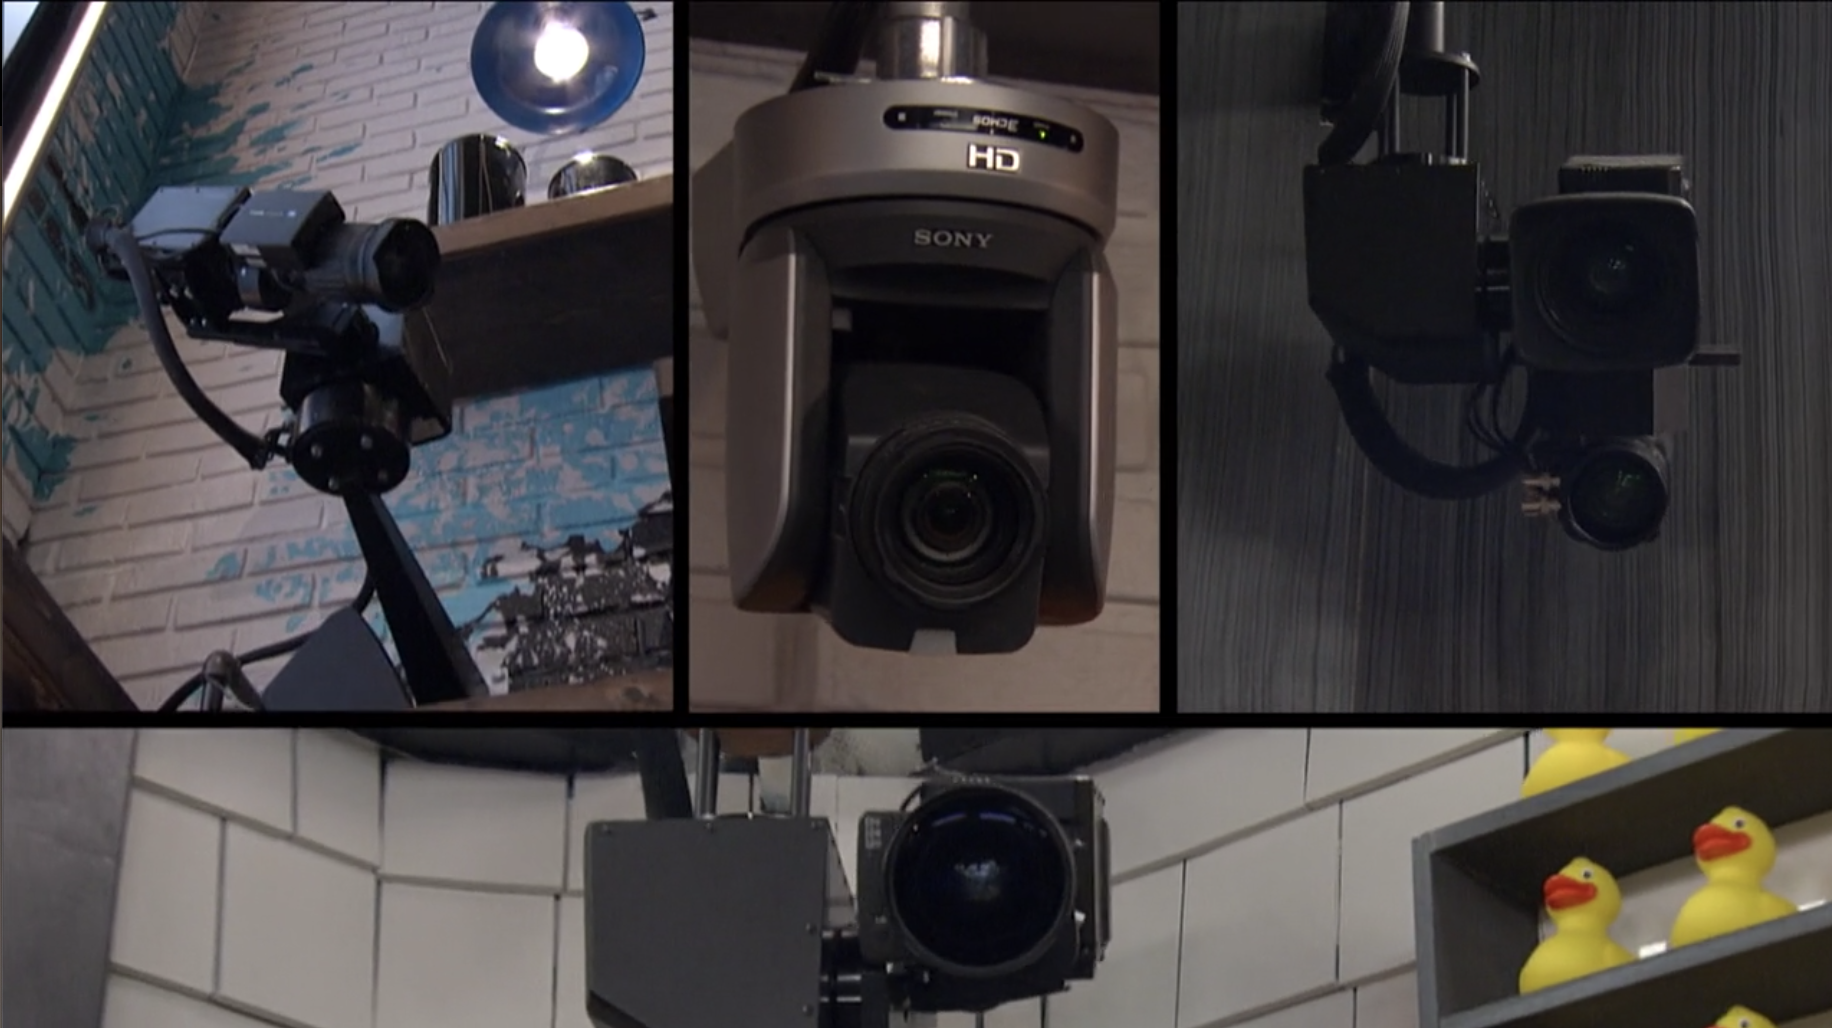 Multiple photos of the cameras inside the house